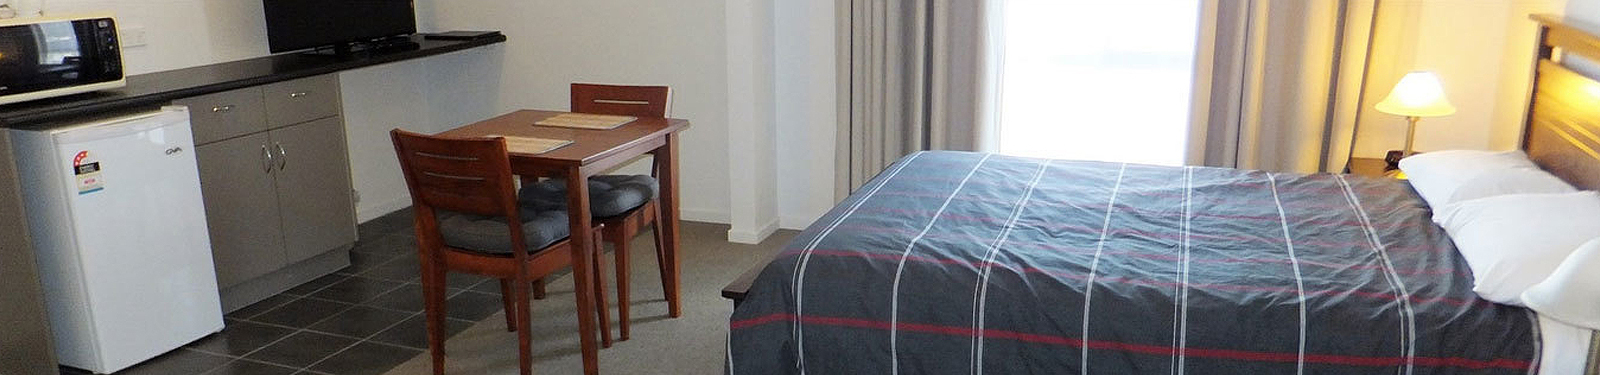 deluxe double room accommodation